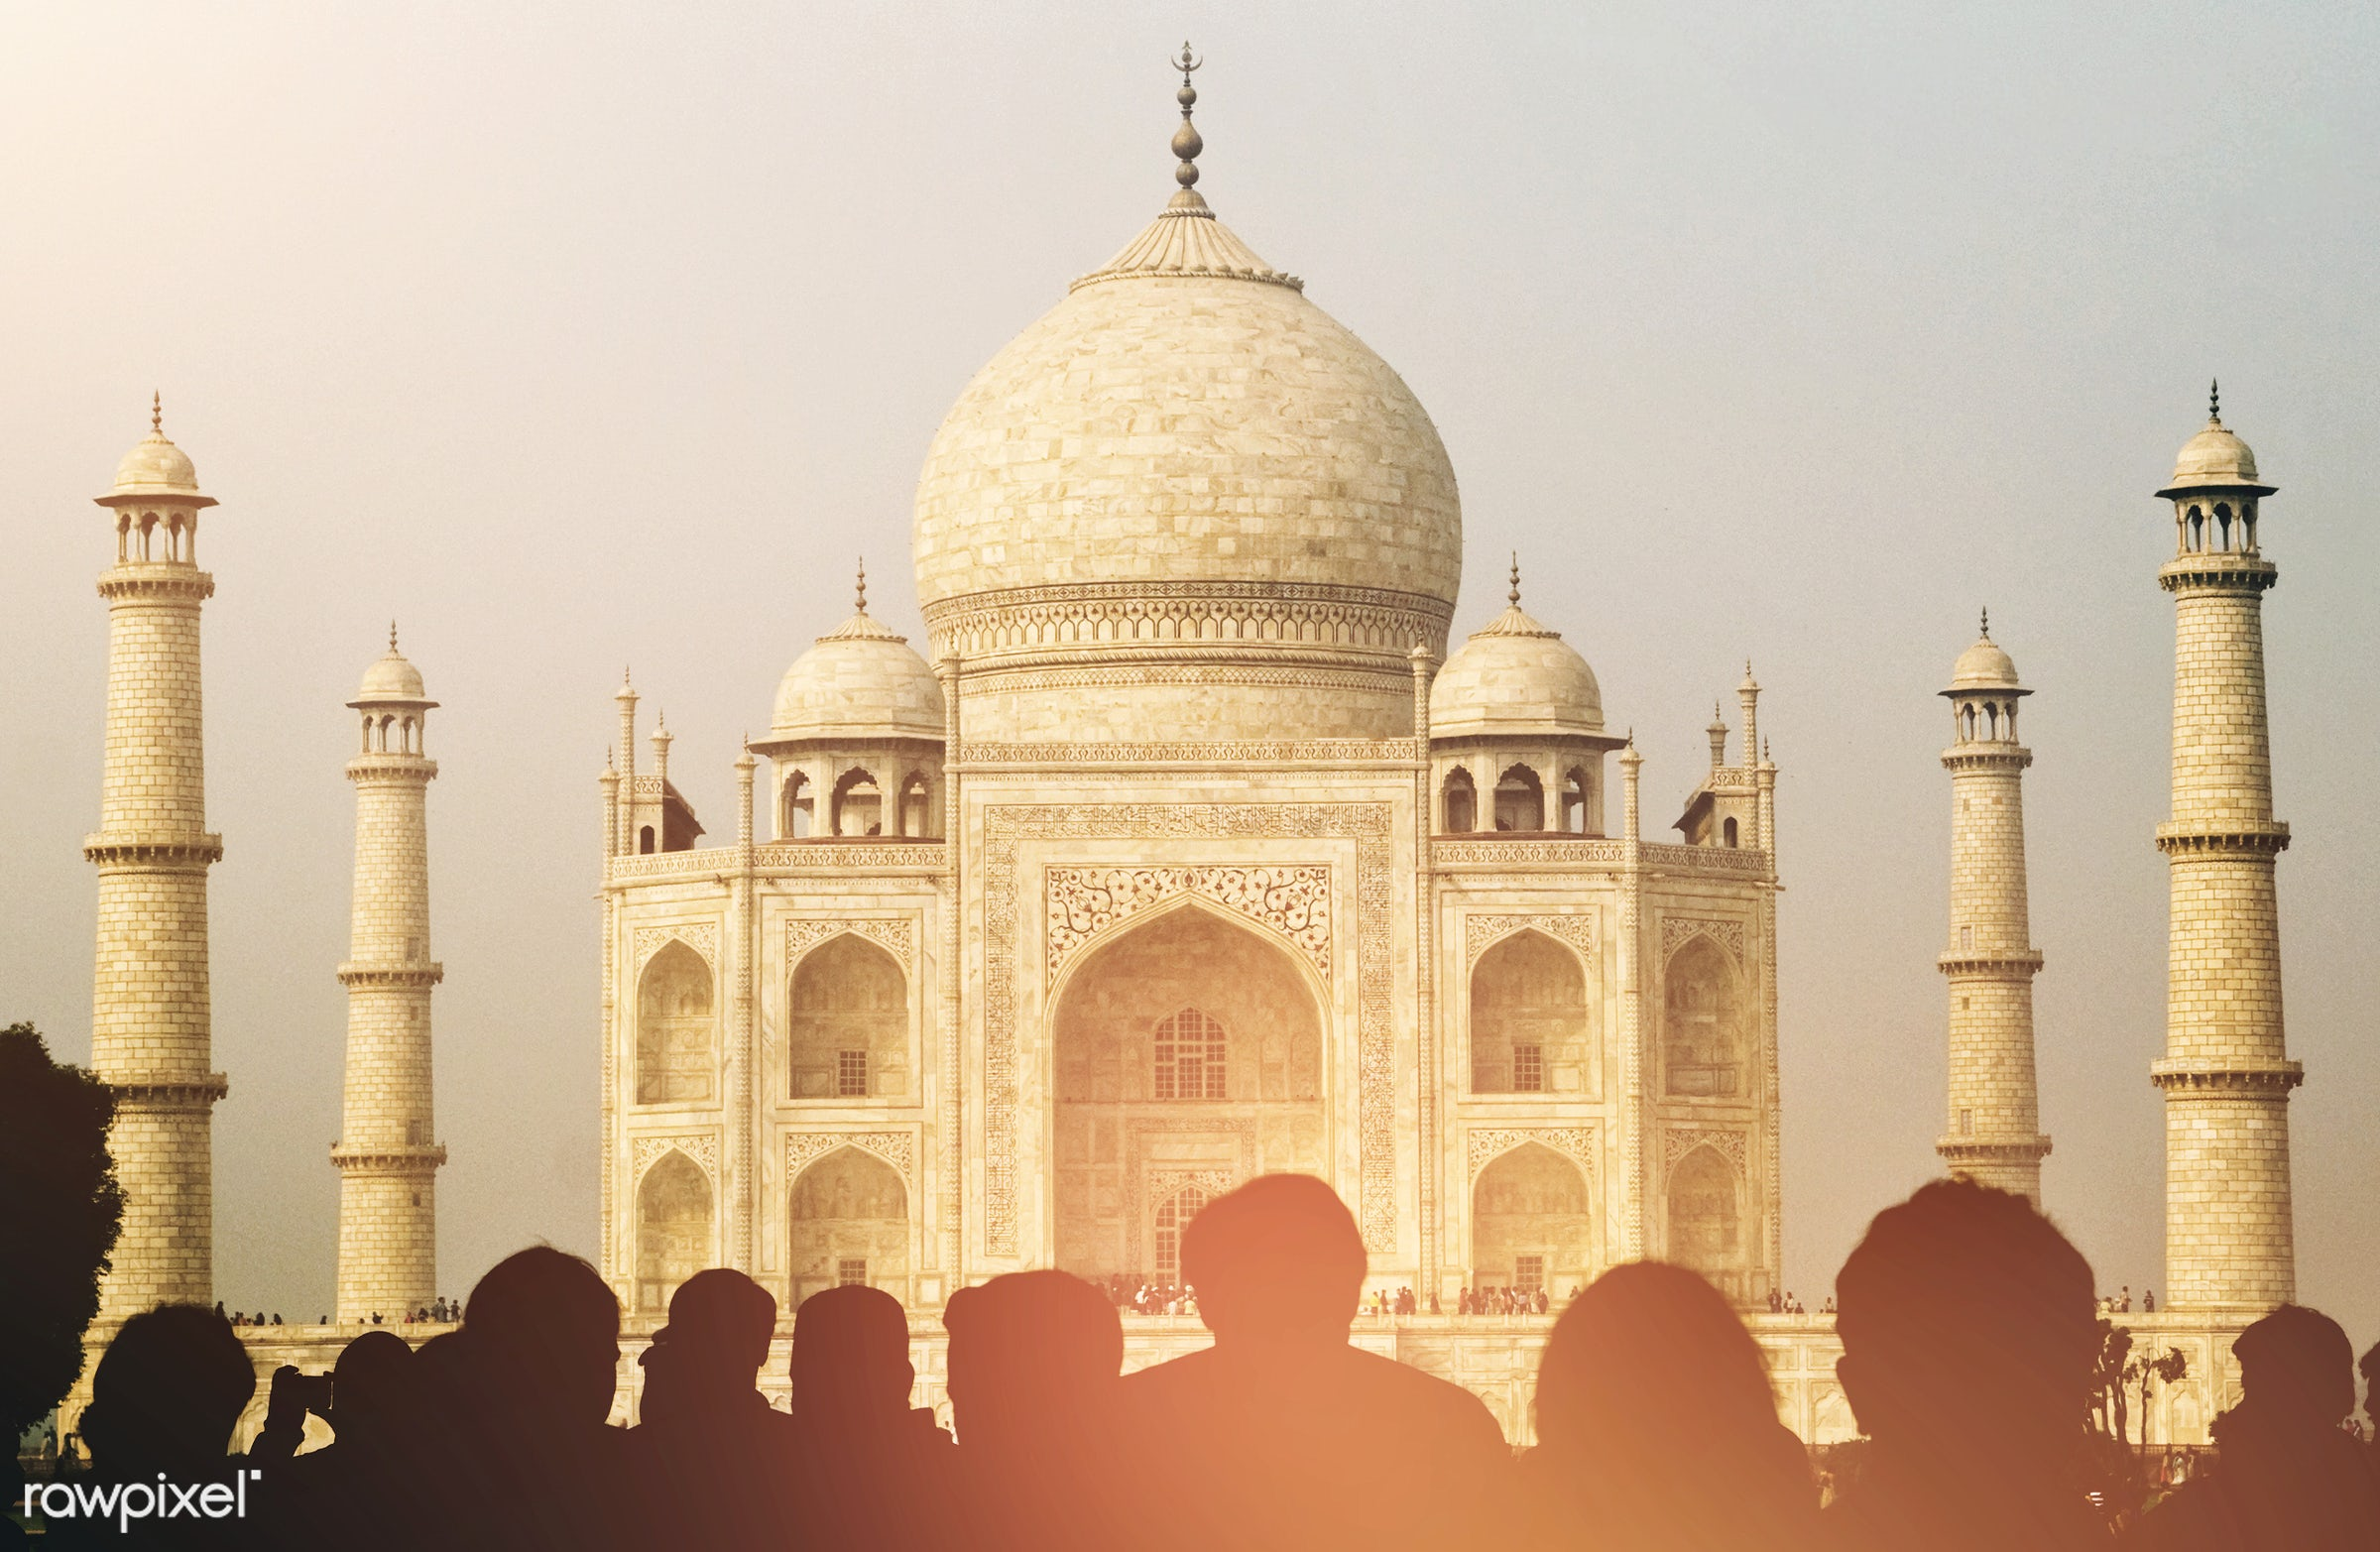 View of Taj Mahal with tourist silhouettes - india, famous place, indian, 7 wonders, architectural styles, architecture,...